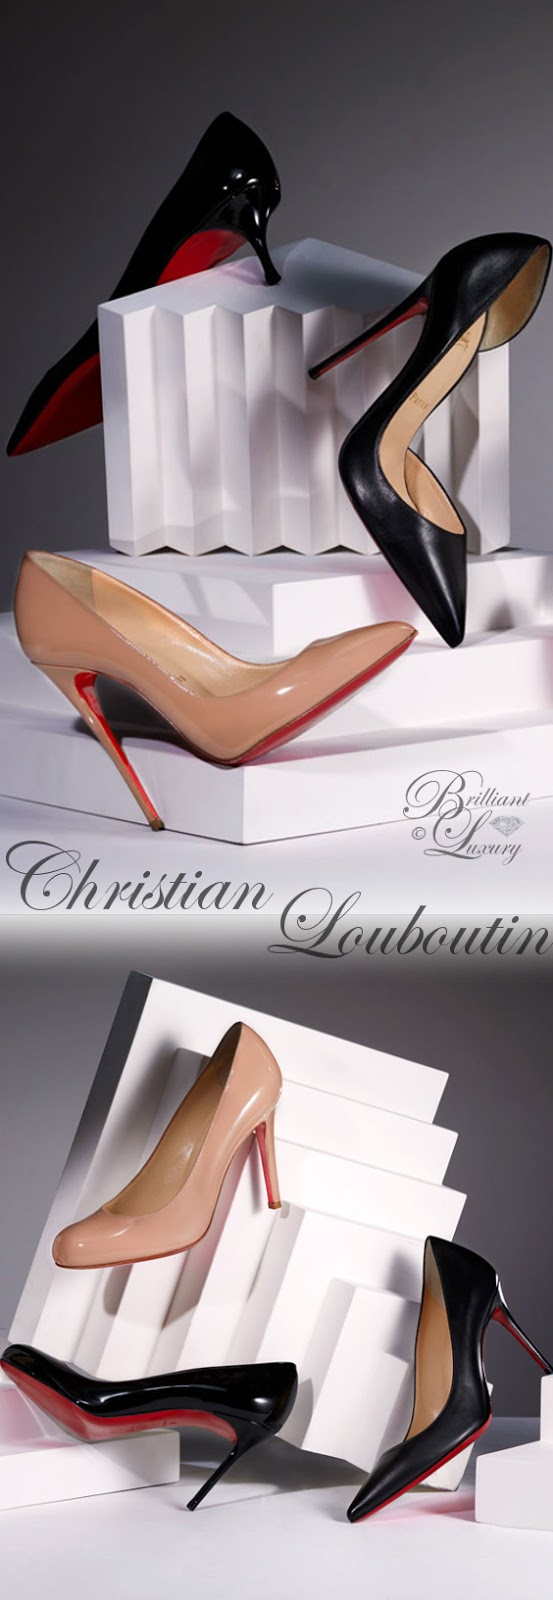 Brilliant Luxury ♦ Christian Louboutin best evening shoes